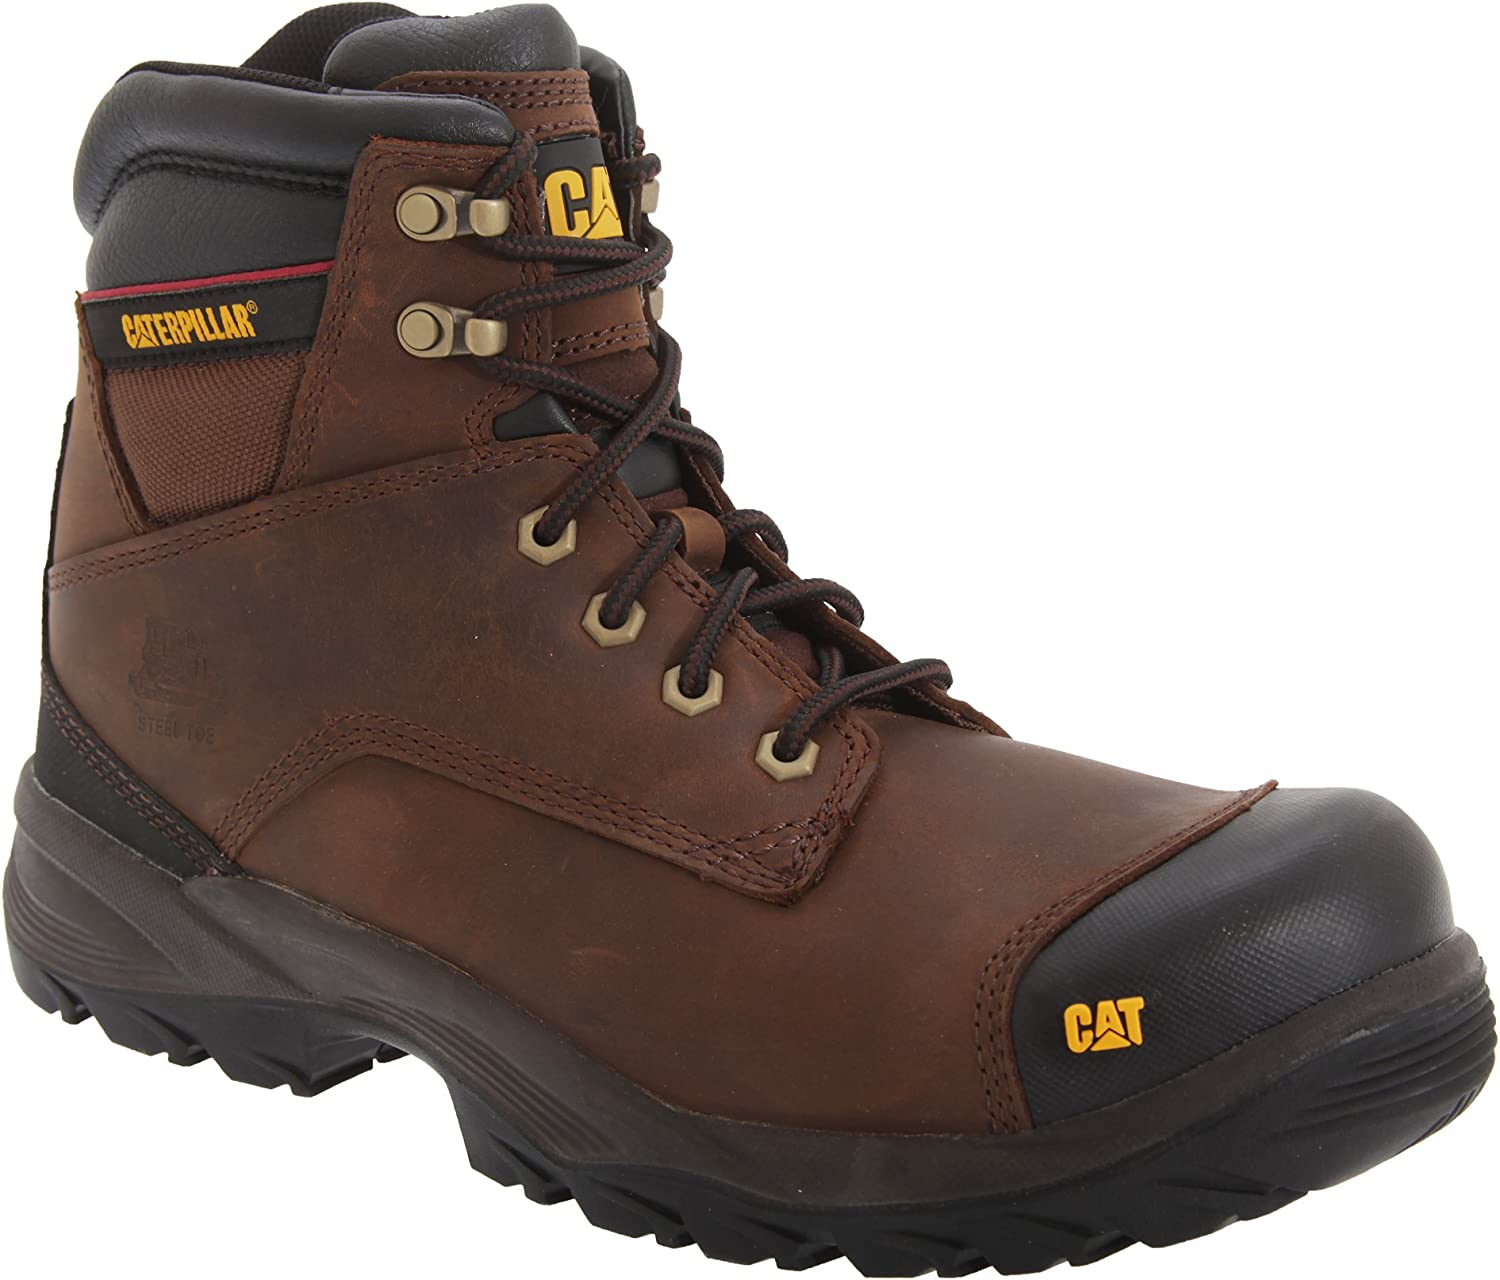 TALLA 40 EU. CAT Workwear Mens SPIRO Water Resistant Leather S3 Steel Safety Boots